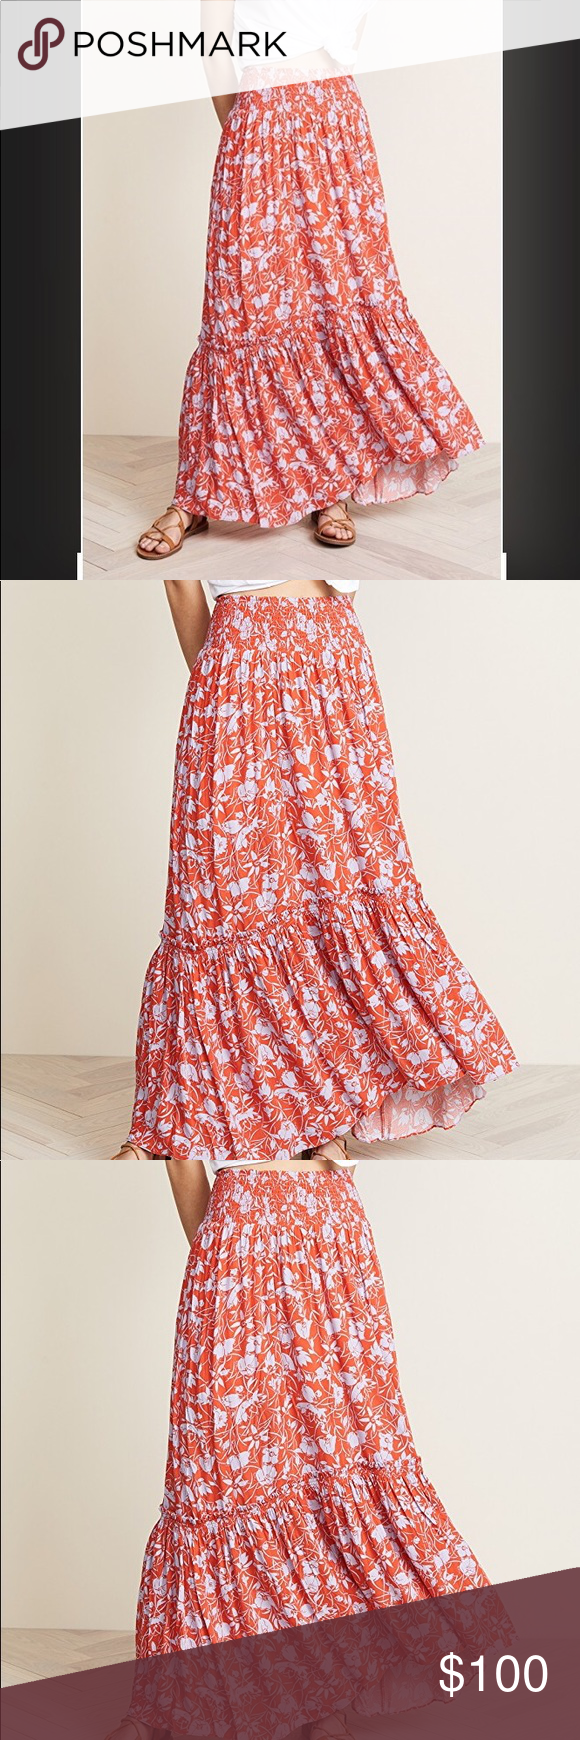 caaa20f70f Free People Way of the Wind Print Maxi Skirt Fabric: Slinky weave Wide  smocked elastic waistband Floral print Tea Length Covered elastic at waist  Lined ...